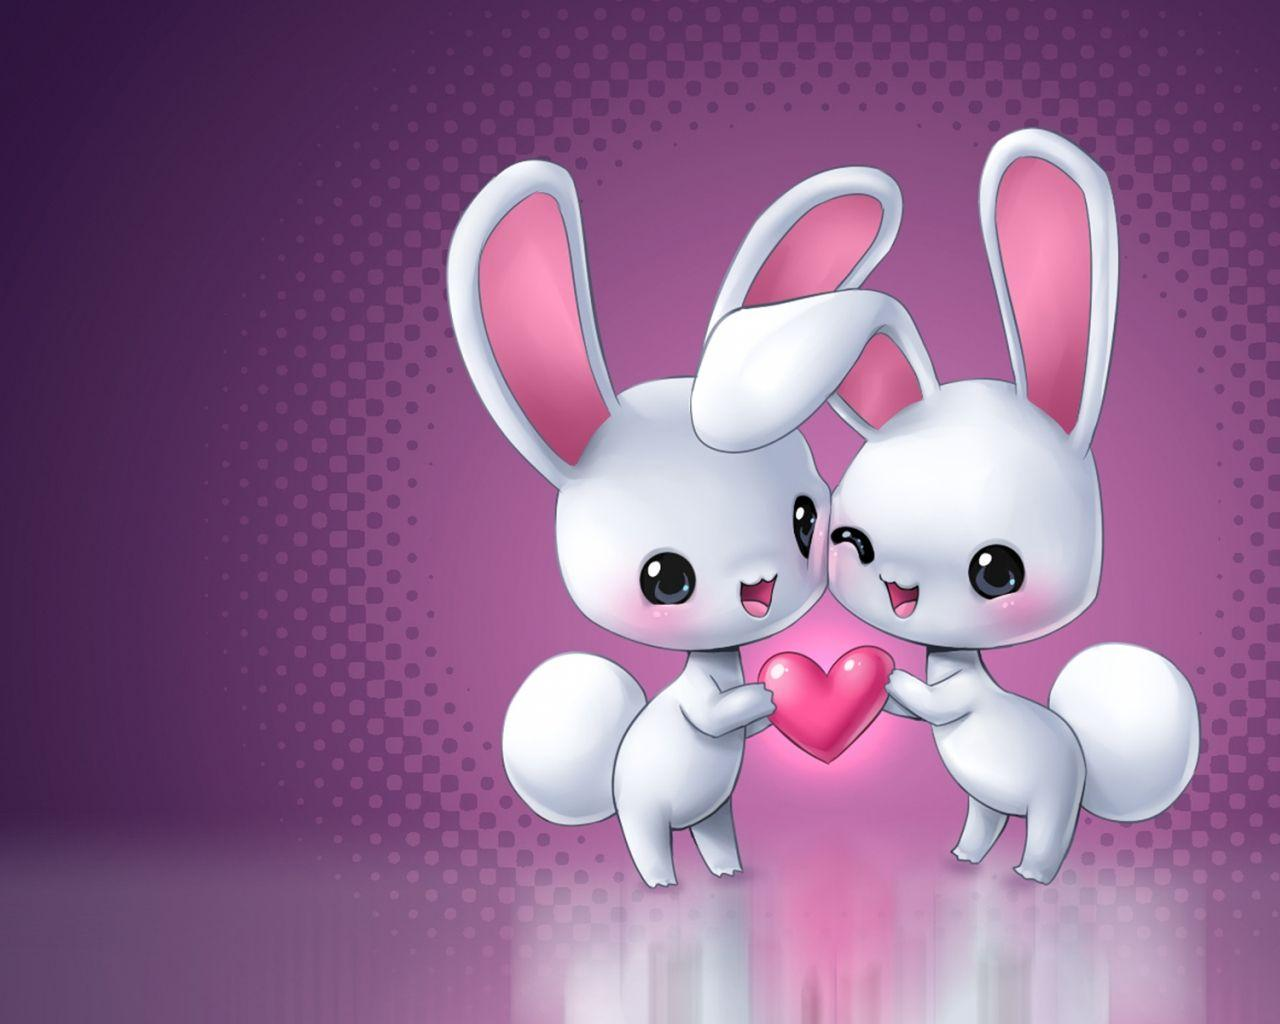 In Love Cartoon Bunnies Wallpapers